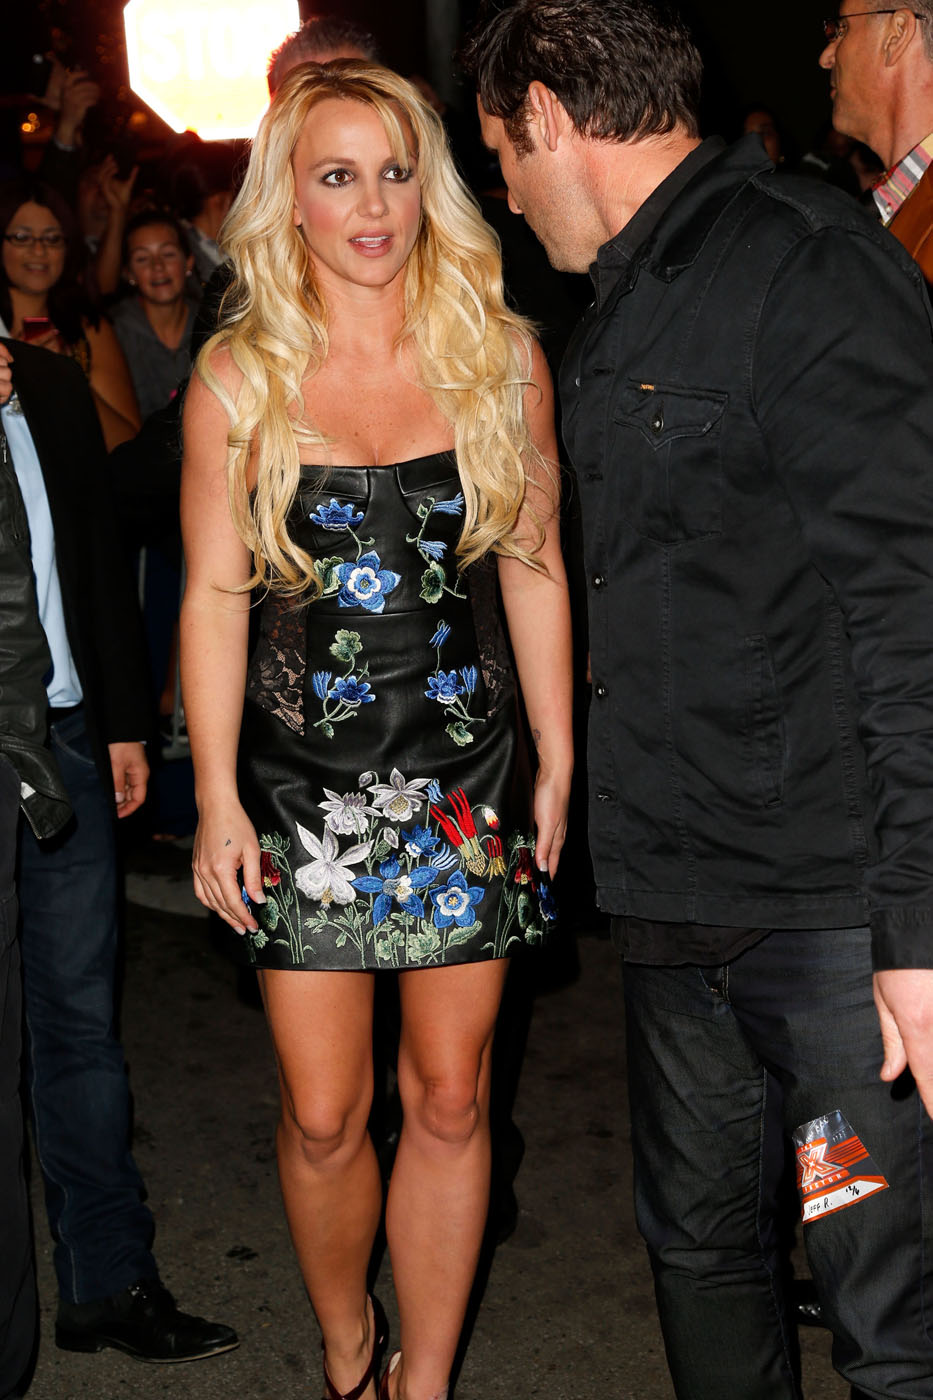 britney-spears-face-x-factor-party-12072